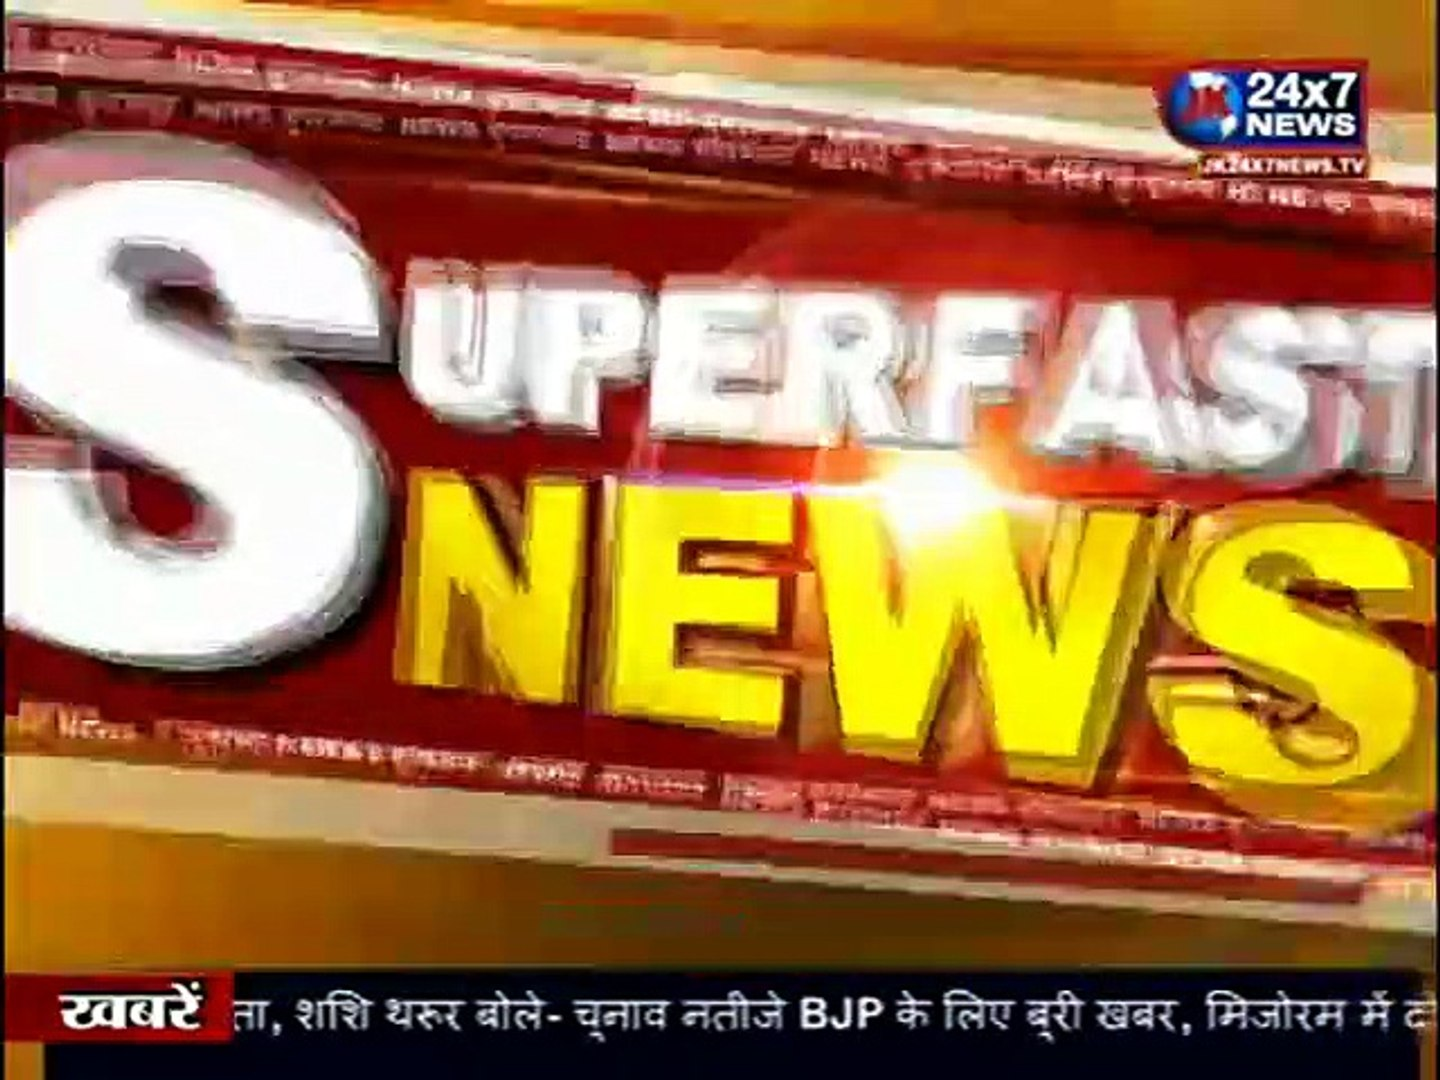 Super Fast 50 News -  News Station